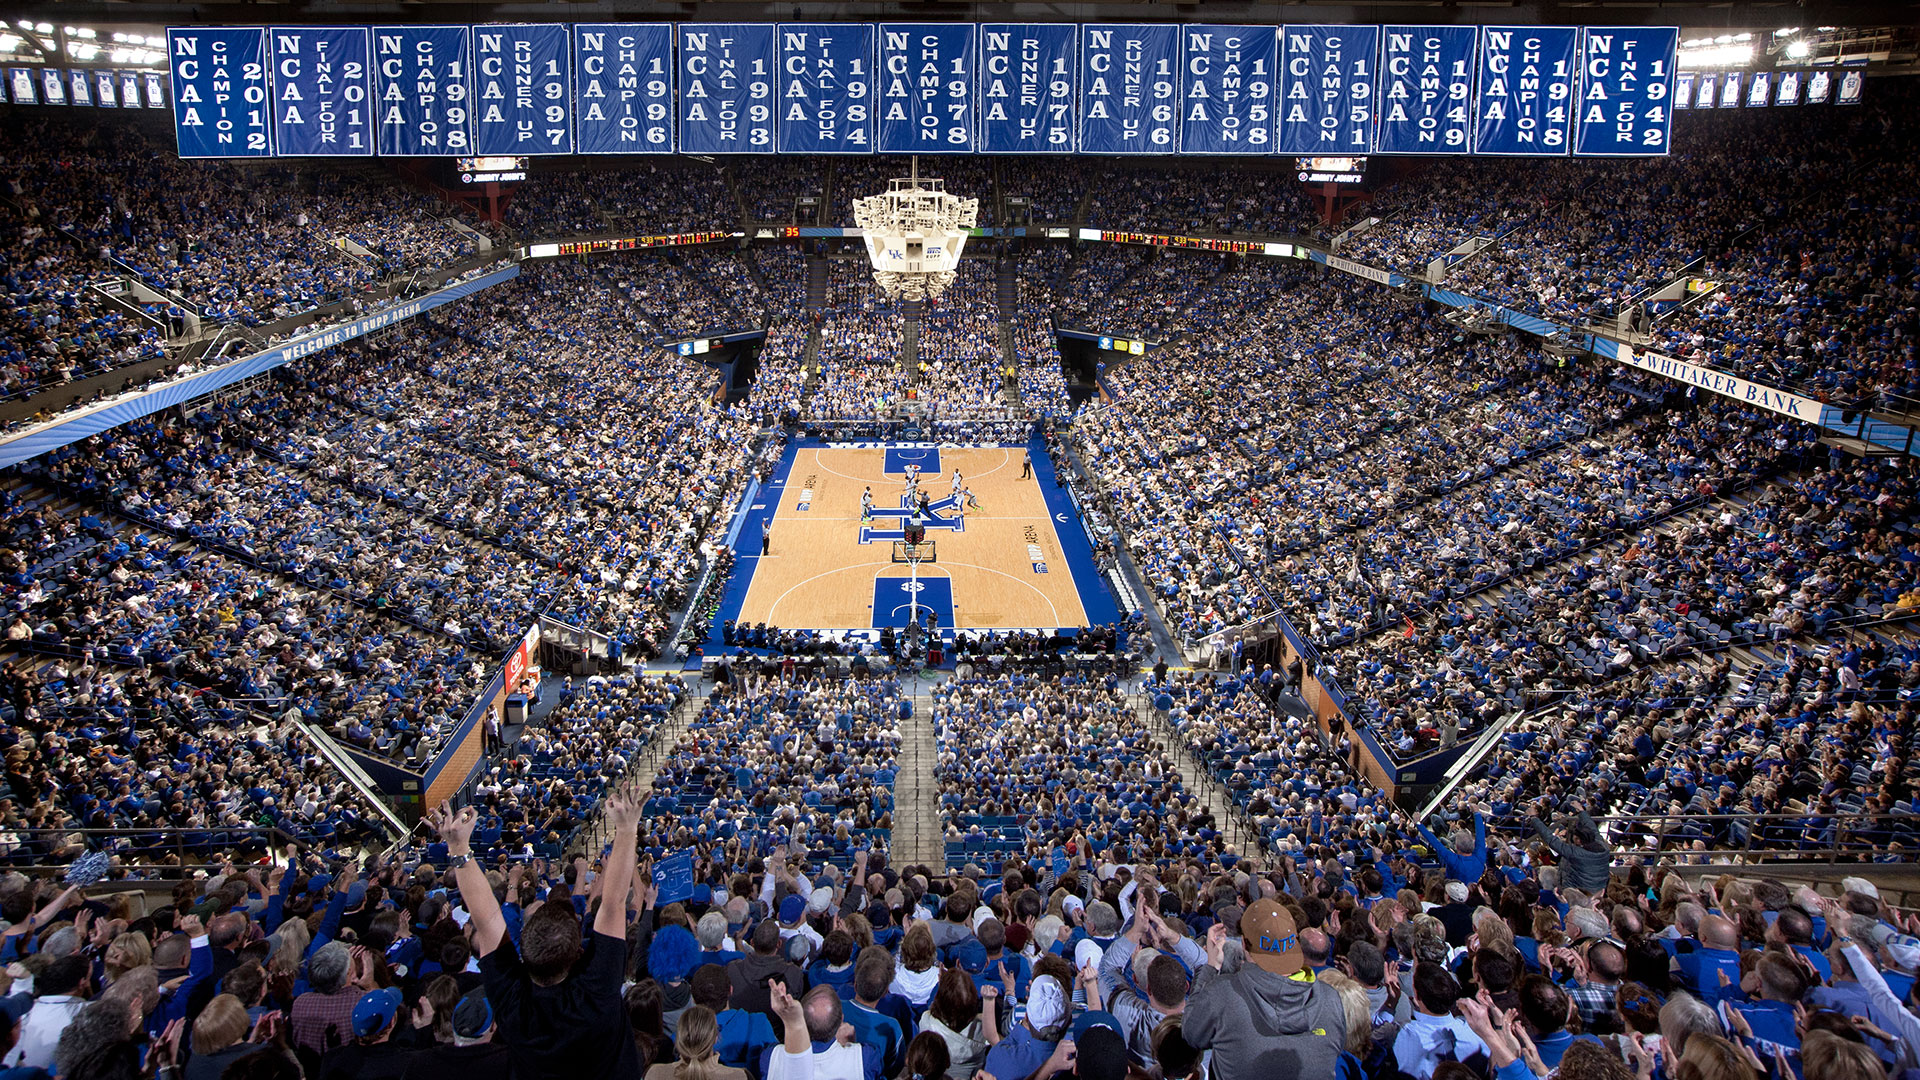 desktop wallpaper for the real University of Kentucky basketball 1920x1080